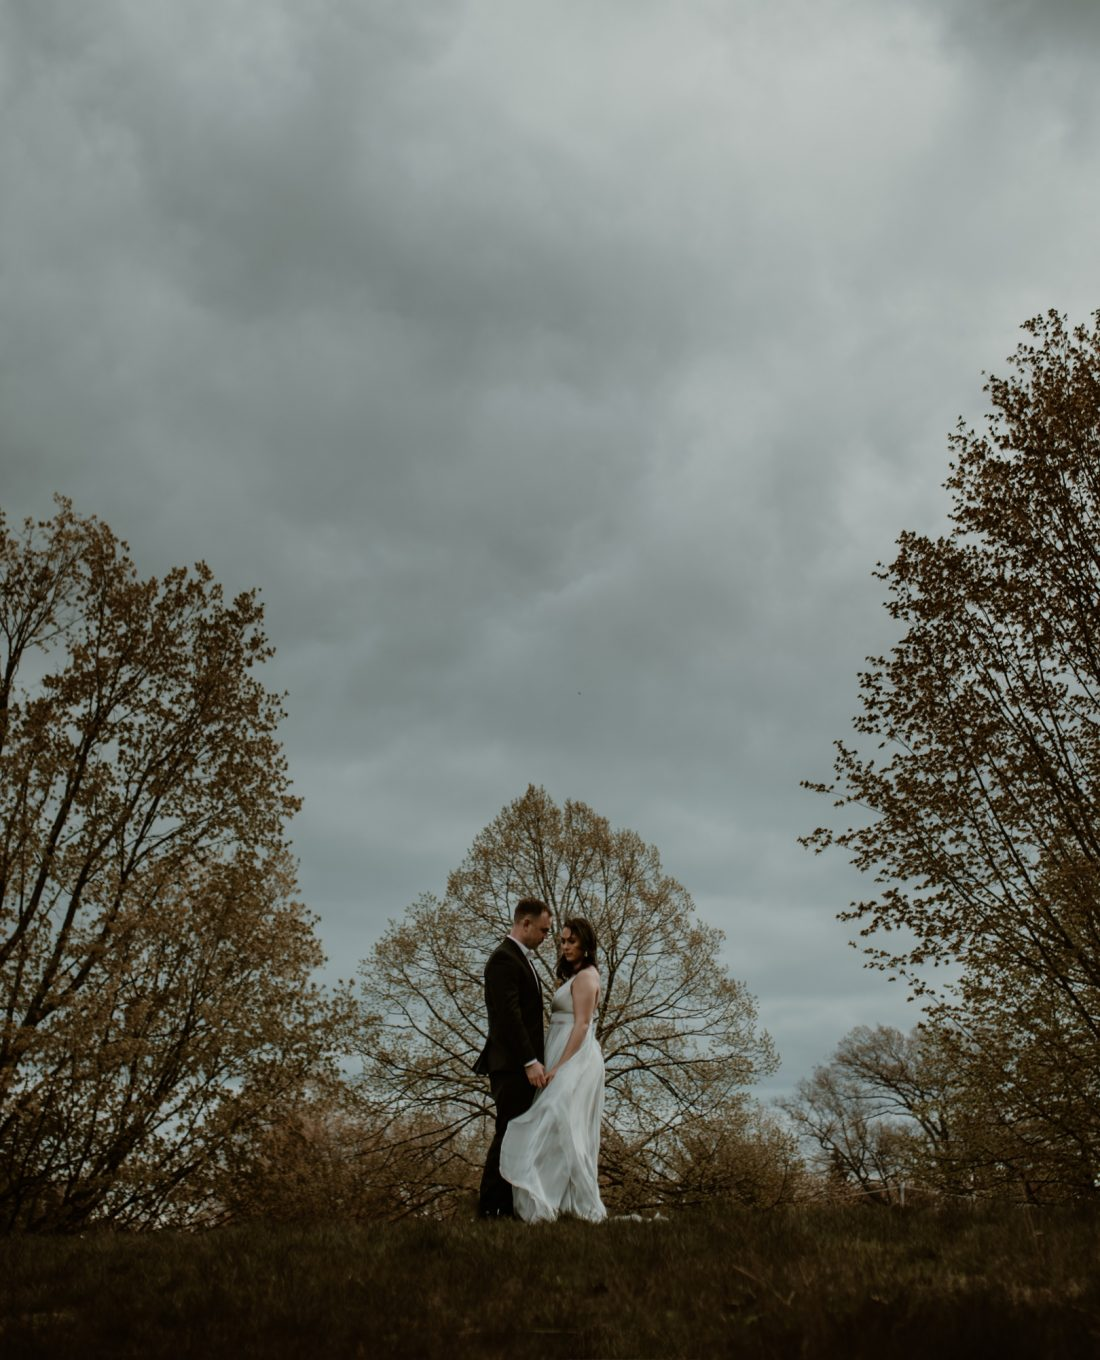 Couple at wedding in the trees